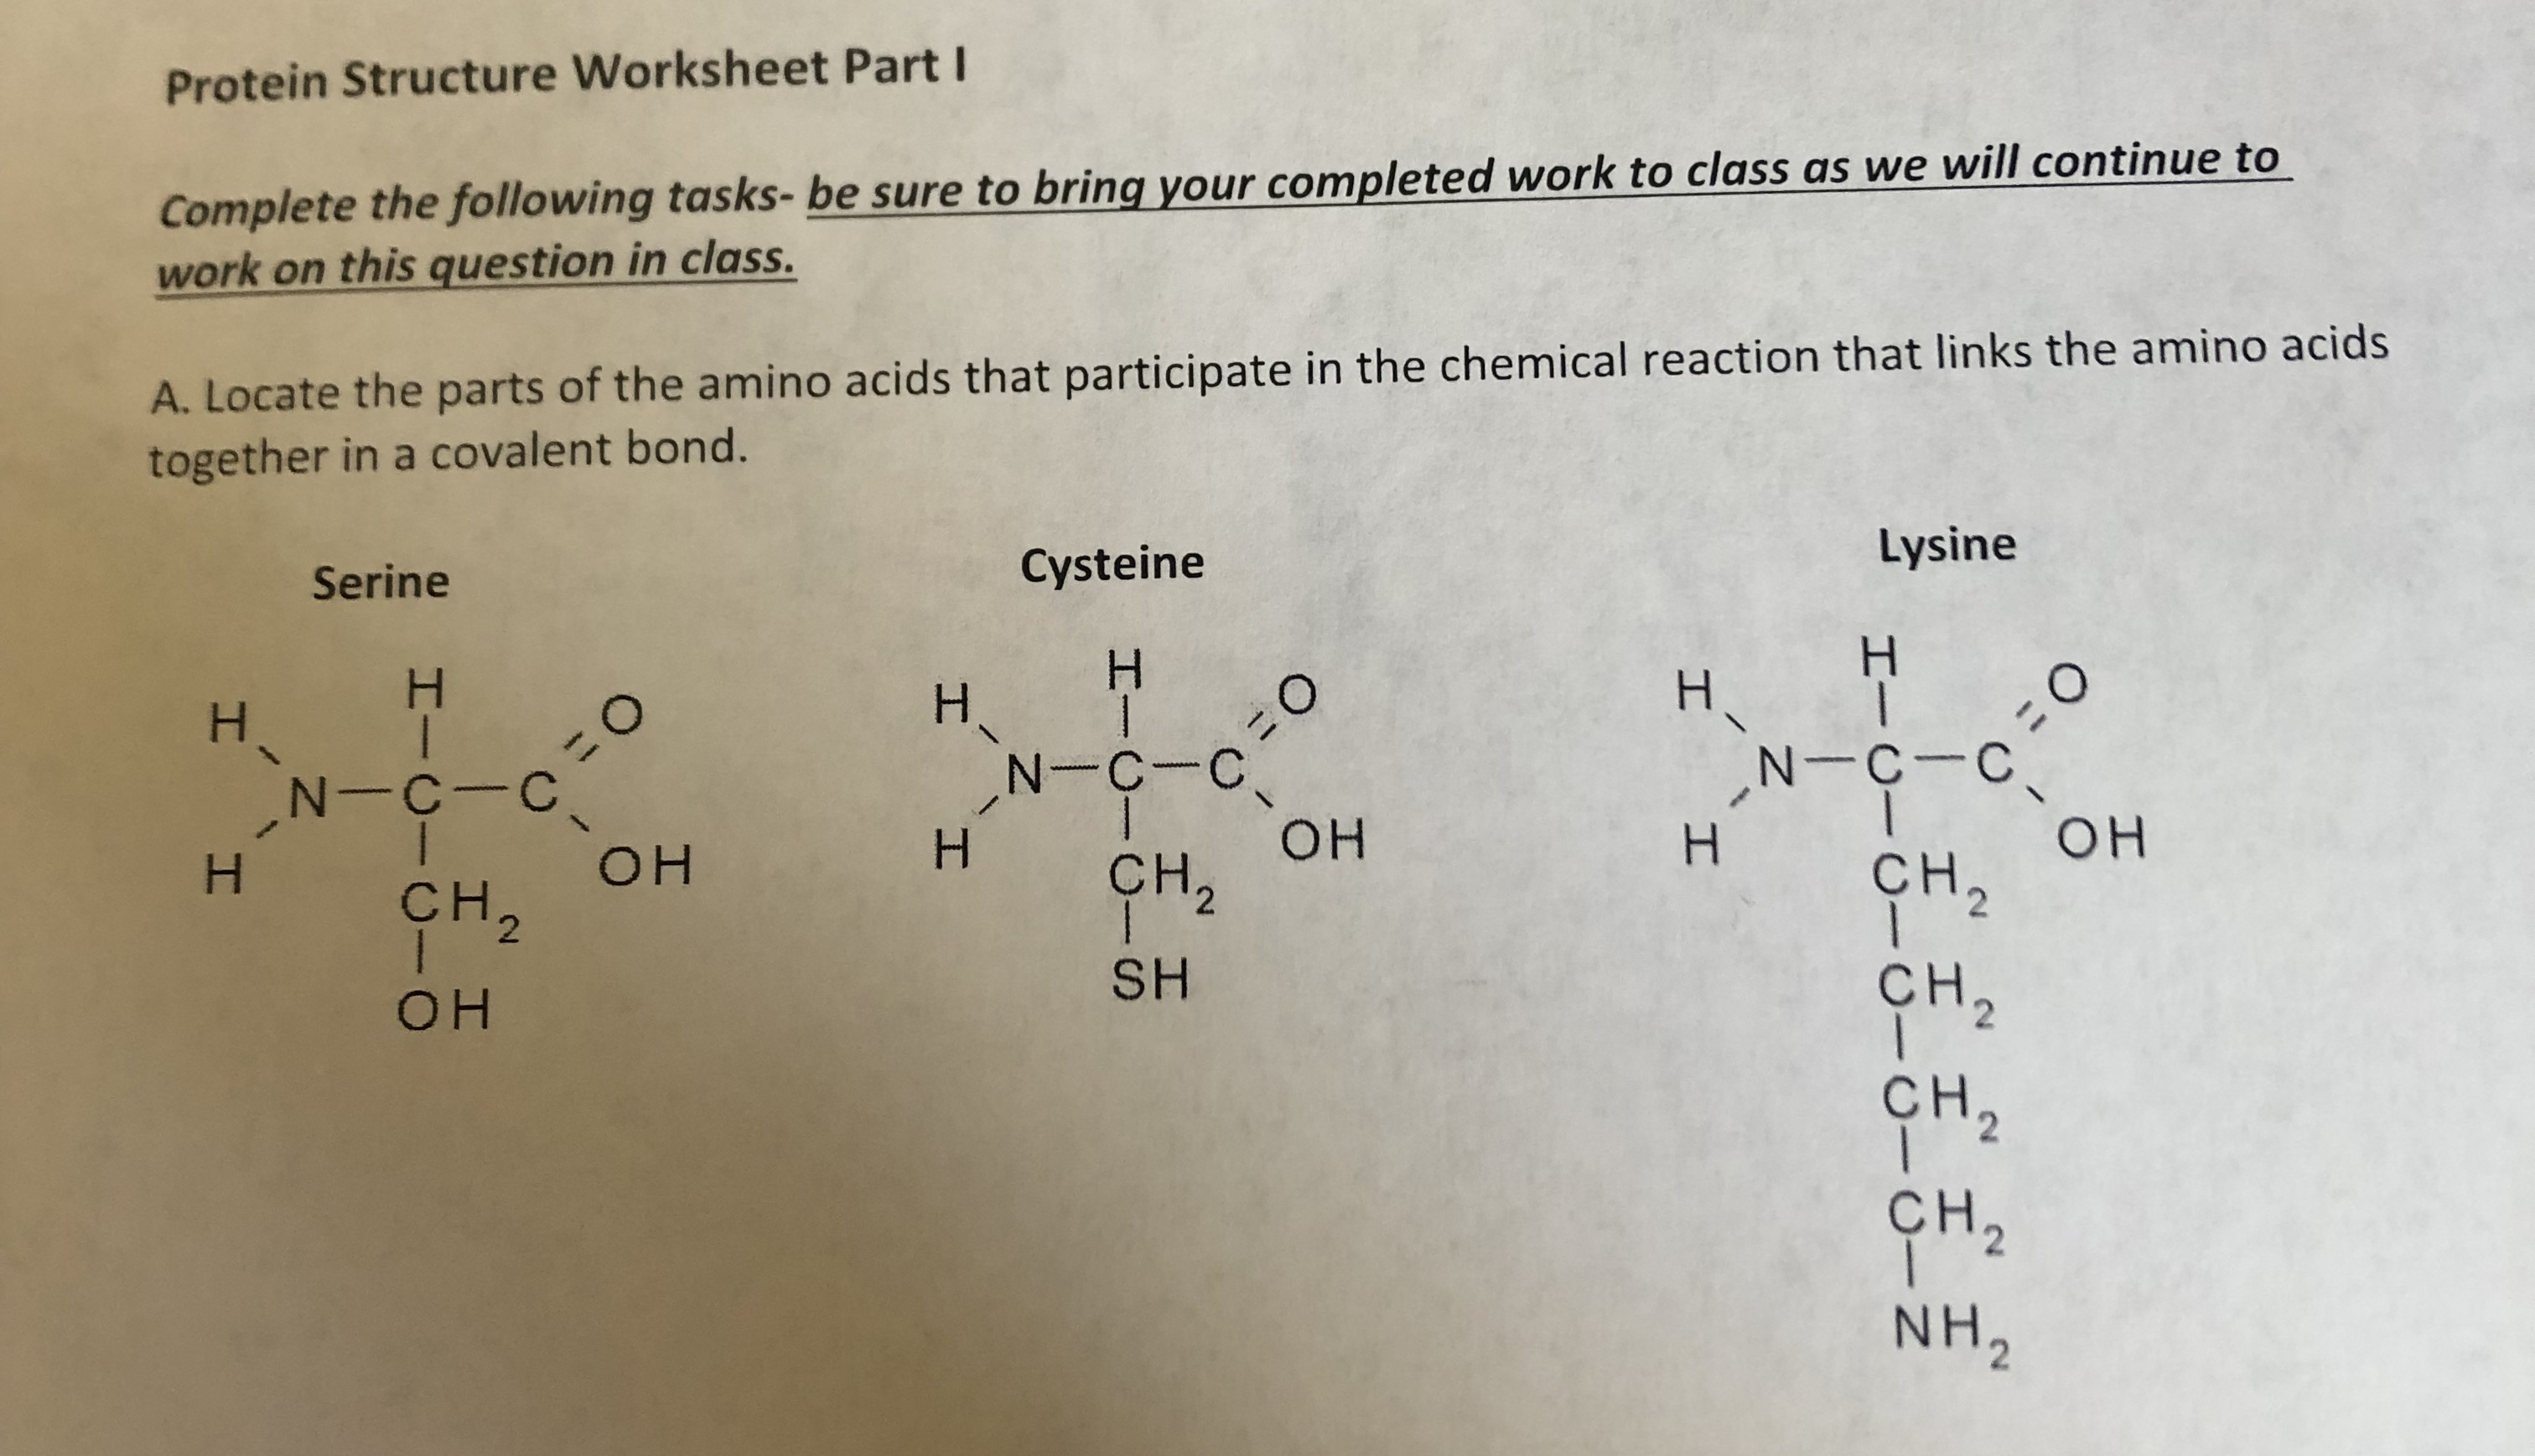 Protein Structure Worksheet PartI Complete the following tasks- be sure to bring your completed work to class as we will continue to work on this question in class. A. Locate the parts of the amino acids that participate in the chemical reaction that links the amino acids together in a covalent bond. Lysine Cysteine Serine Н H. H 11 N-C-C он сн, =0 N-C-C I Н OH H ҫH, Он Cн, 2 2 SH ҫн, OH сн, ҫн, NH2 2 2 I I - C- N I-C-CIC- I I O- I I /\